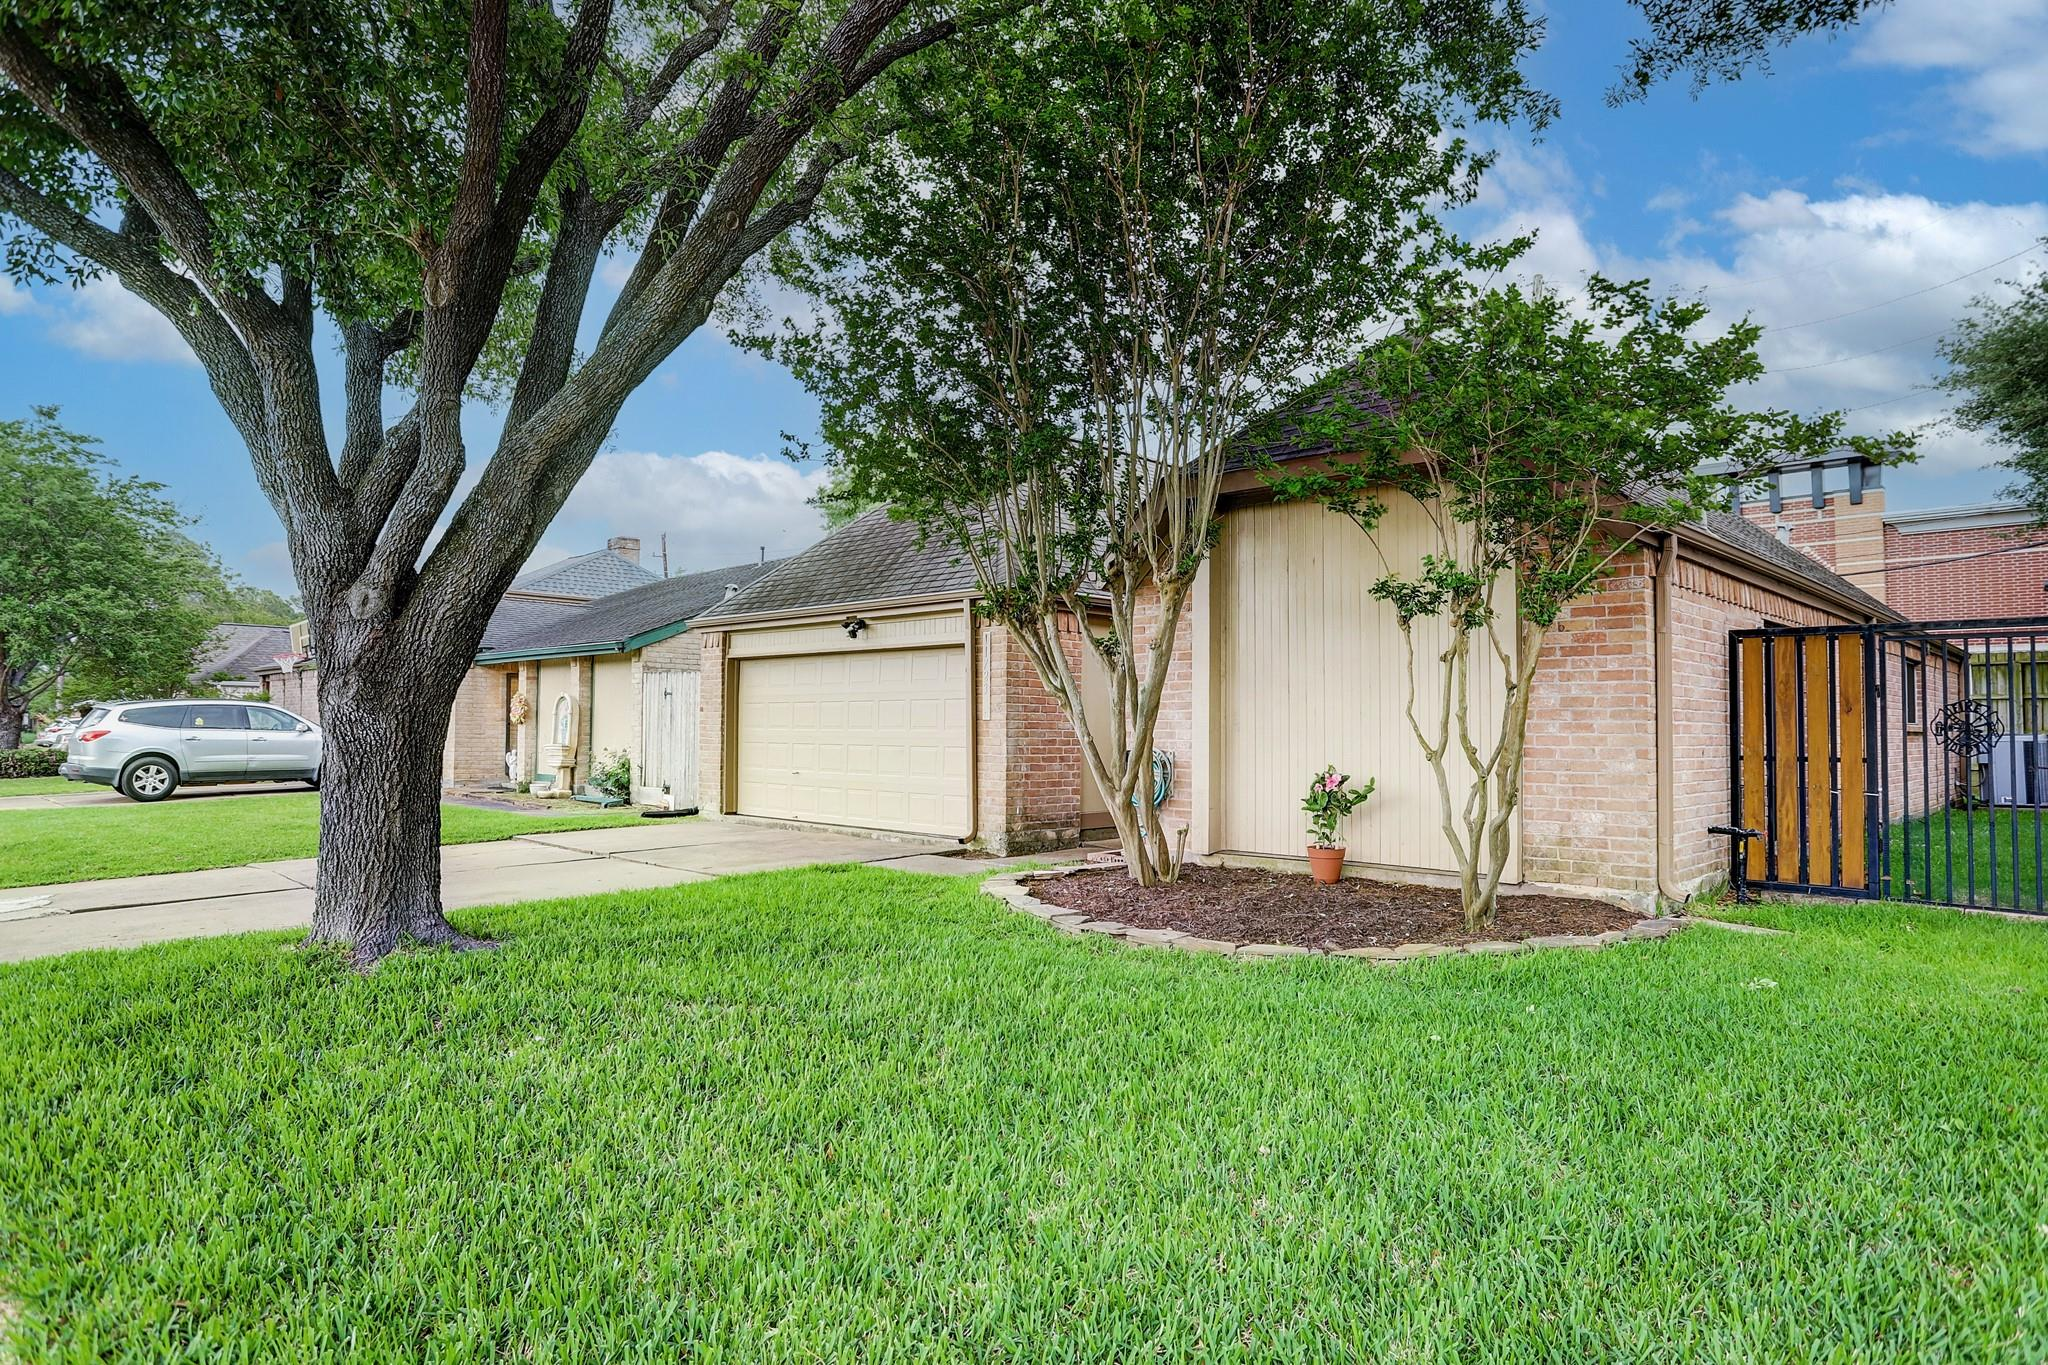 11723 Brook Meadows Property Photo - Meadows Place, TX real estate listing